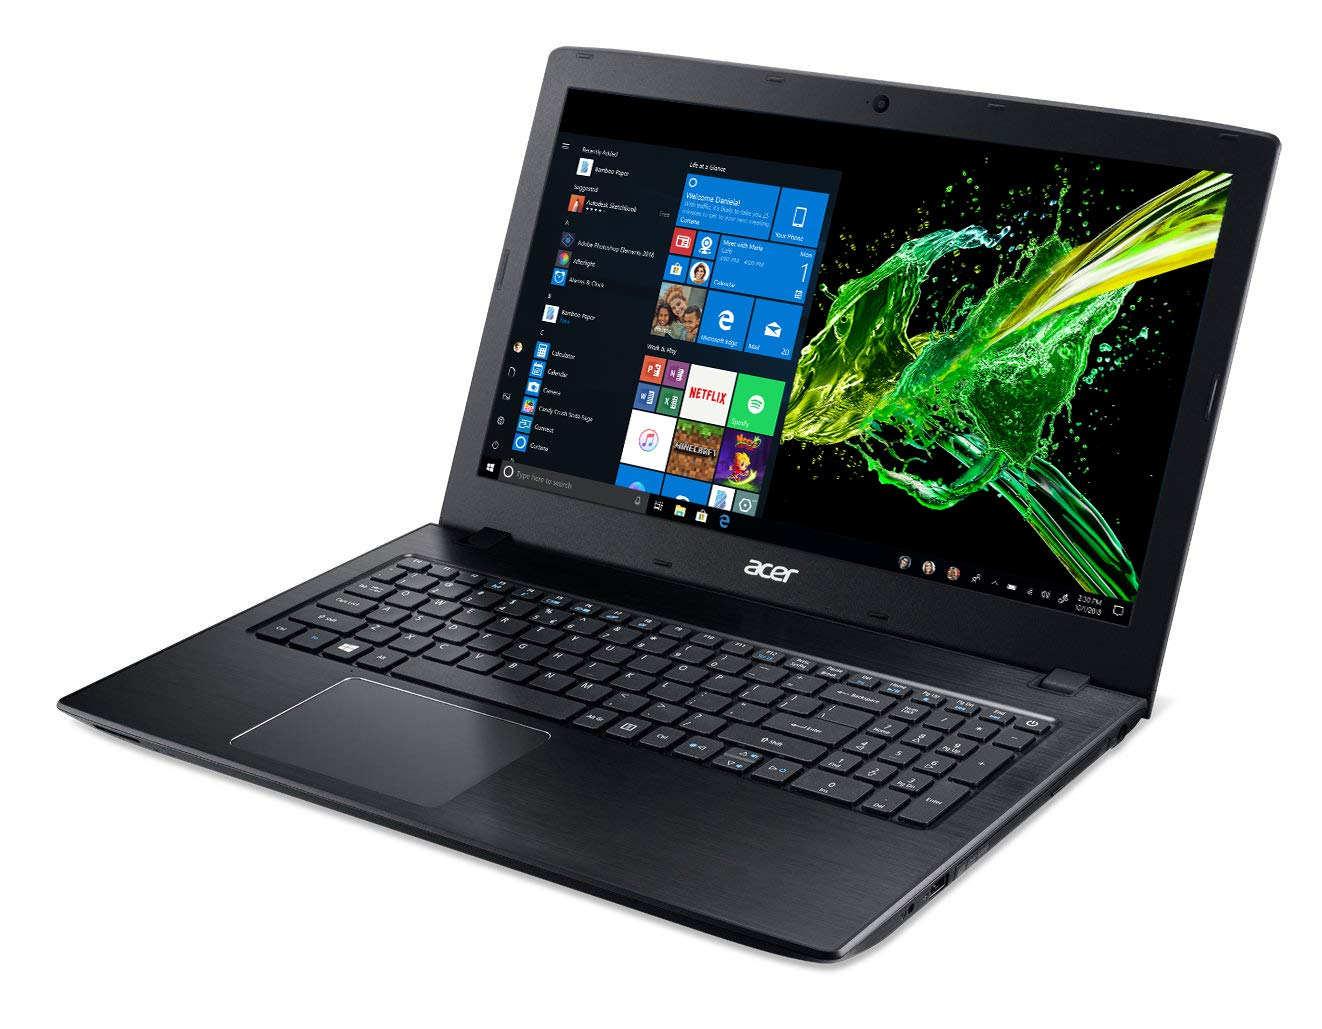 Image result for Acer Aspire E15 (8th Gen)